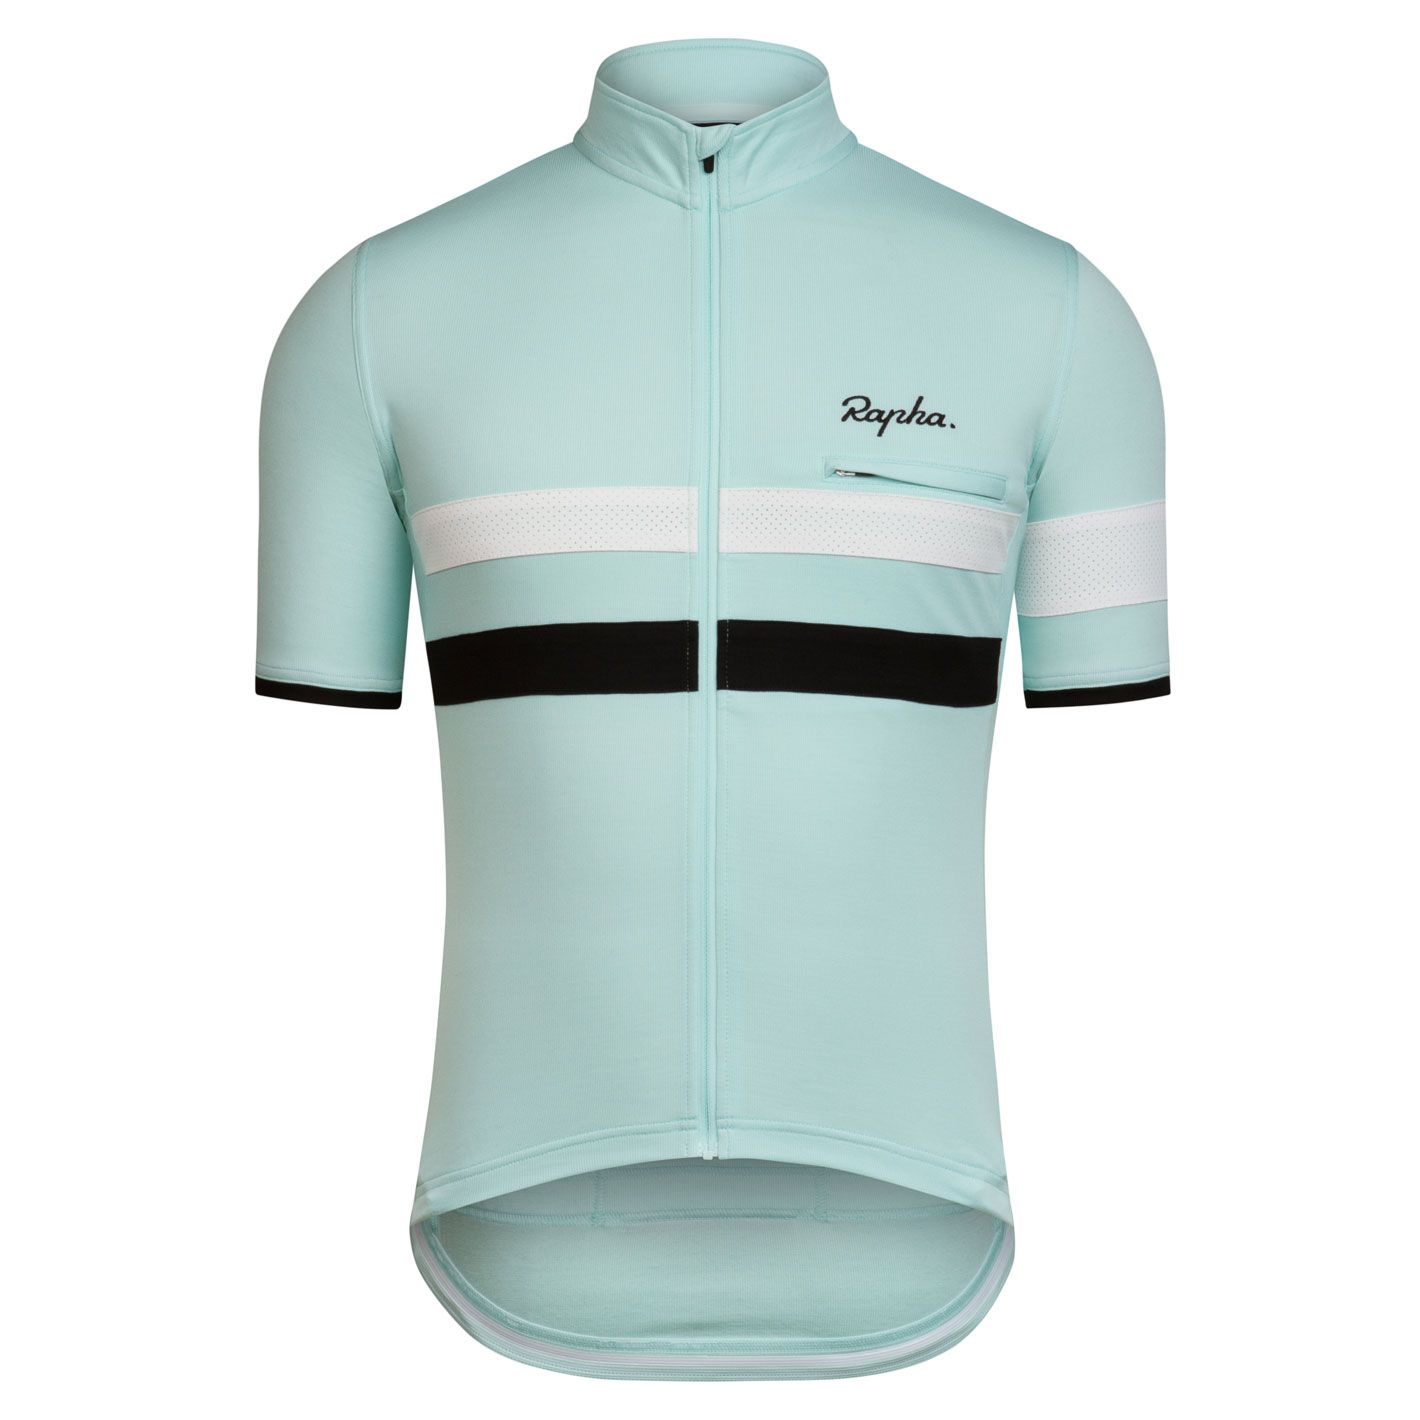 Rapha | Rapha Collections Guide